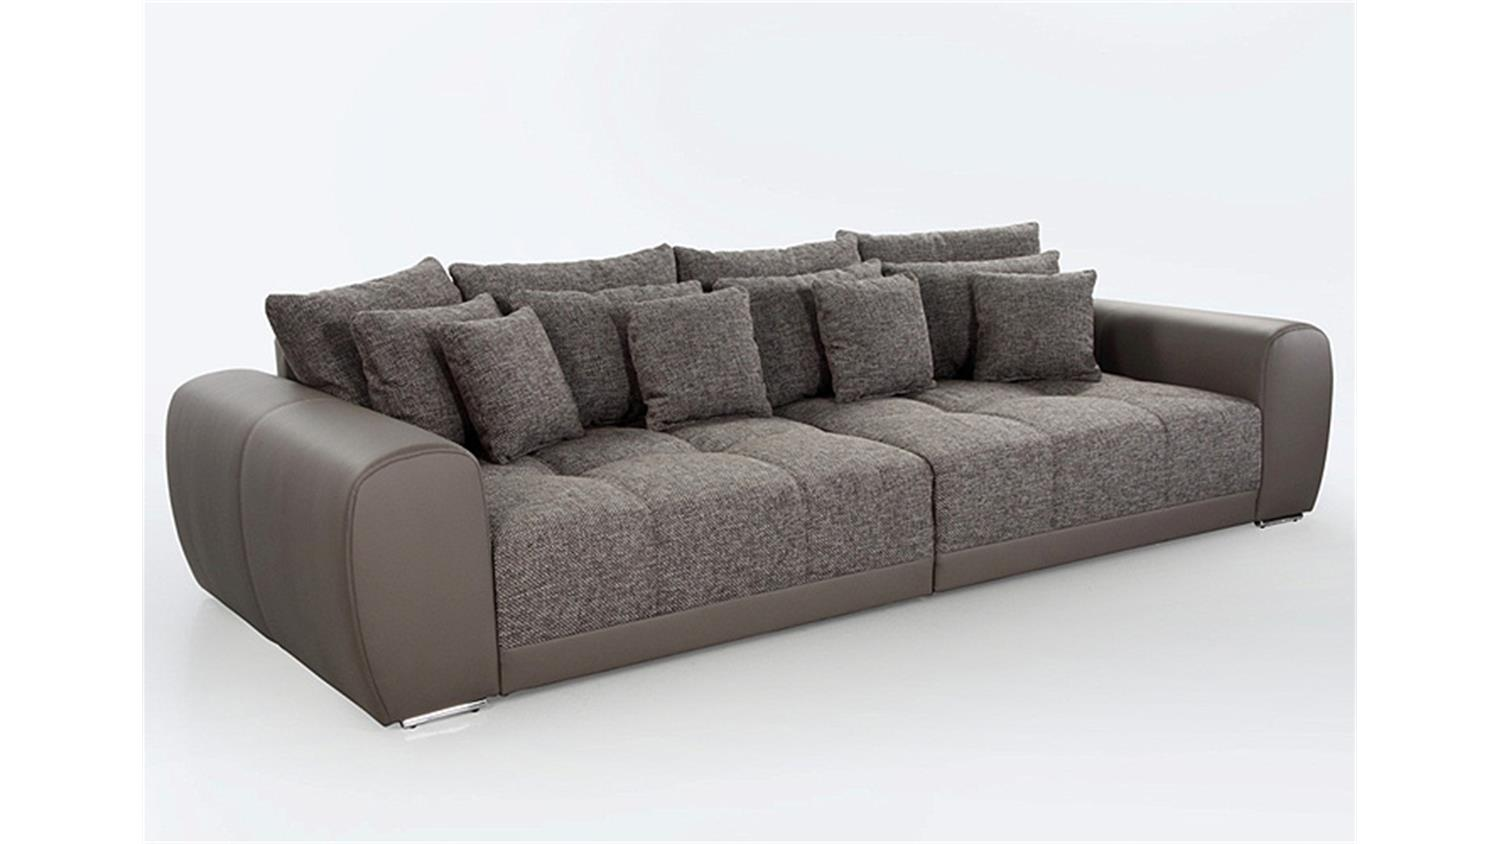 big sofa xxl das beste aus wohndesign und m bel inspiration. Black Bedroom Furniture Sets. Home Design Ideas